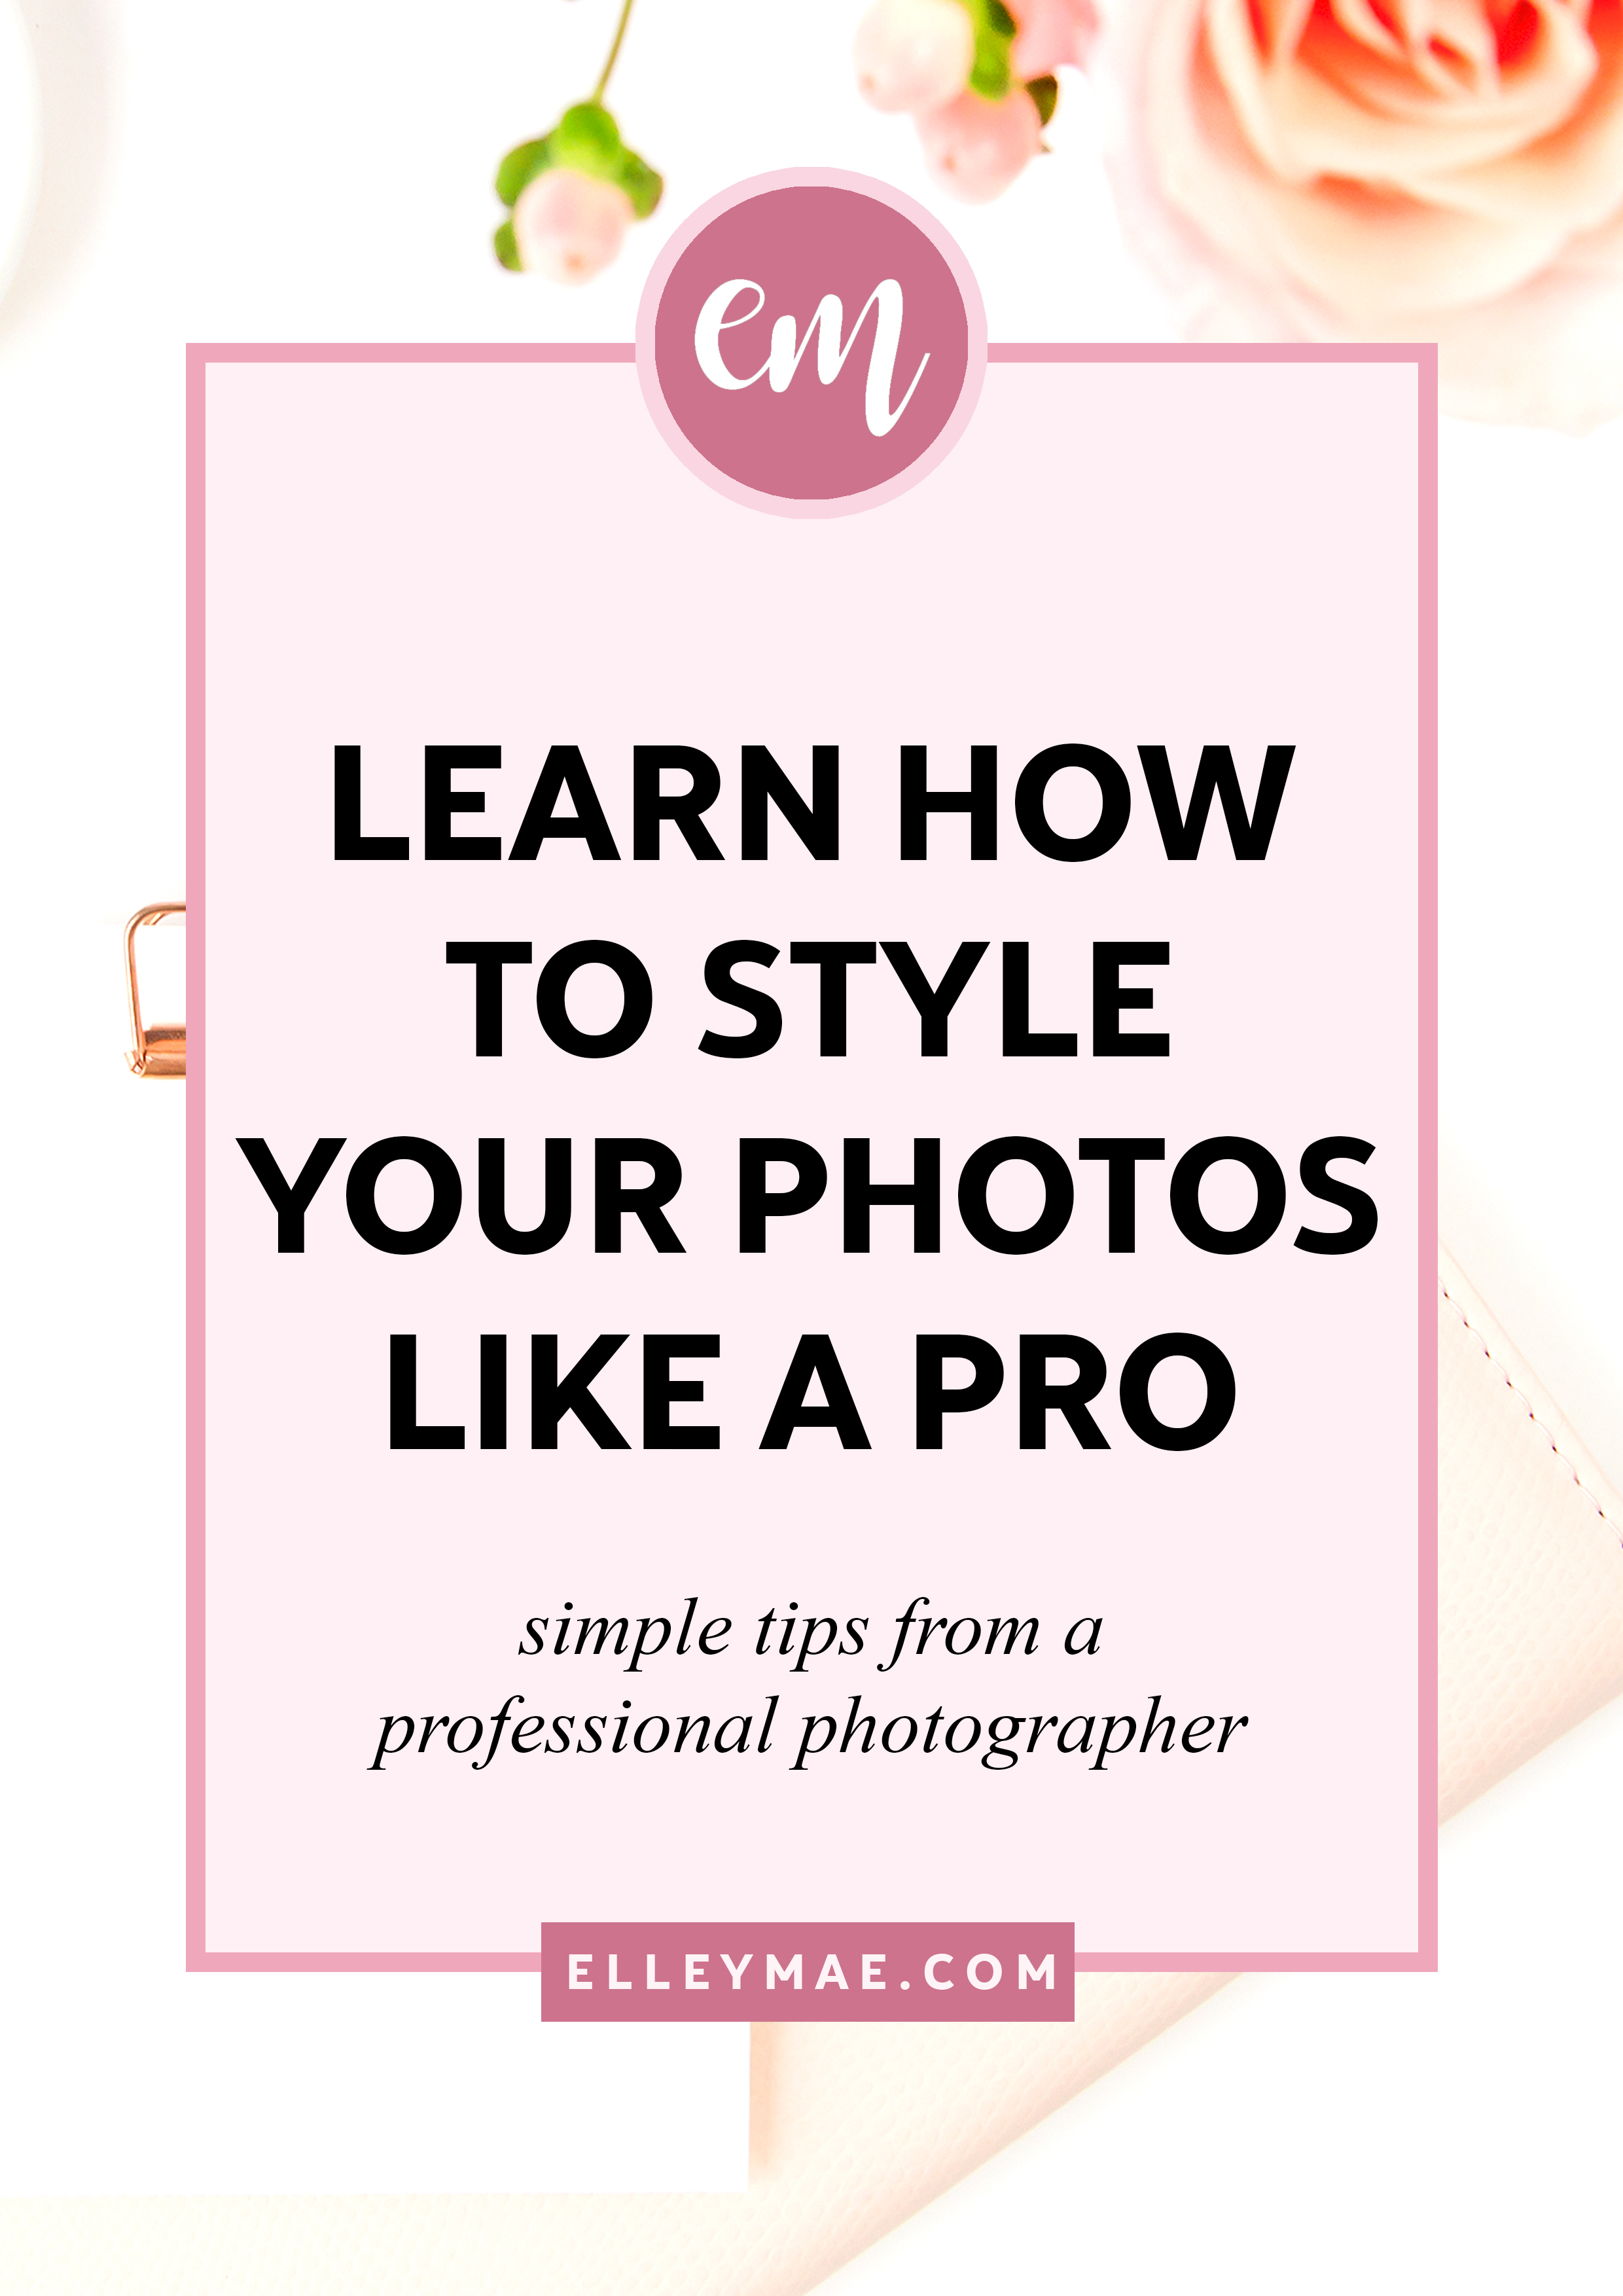 How To Nail Your Photo Styling Like A Pro Photographer | Learn how to master the art of photo styling with tips & tricks from a professional photographer. Amp up your Instagram flatlay game, theme your Instagram & enhance your blog photography all through your photo styling. It's seriously that simple! | Learn more from Elley Charles, a professional photographer turned social media obsessed tech geek & part time blogger. ElleyMae.com